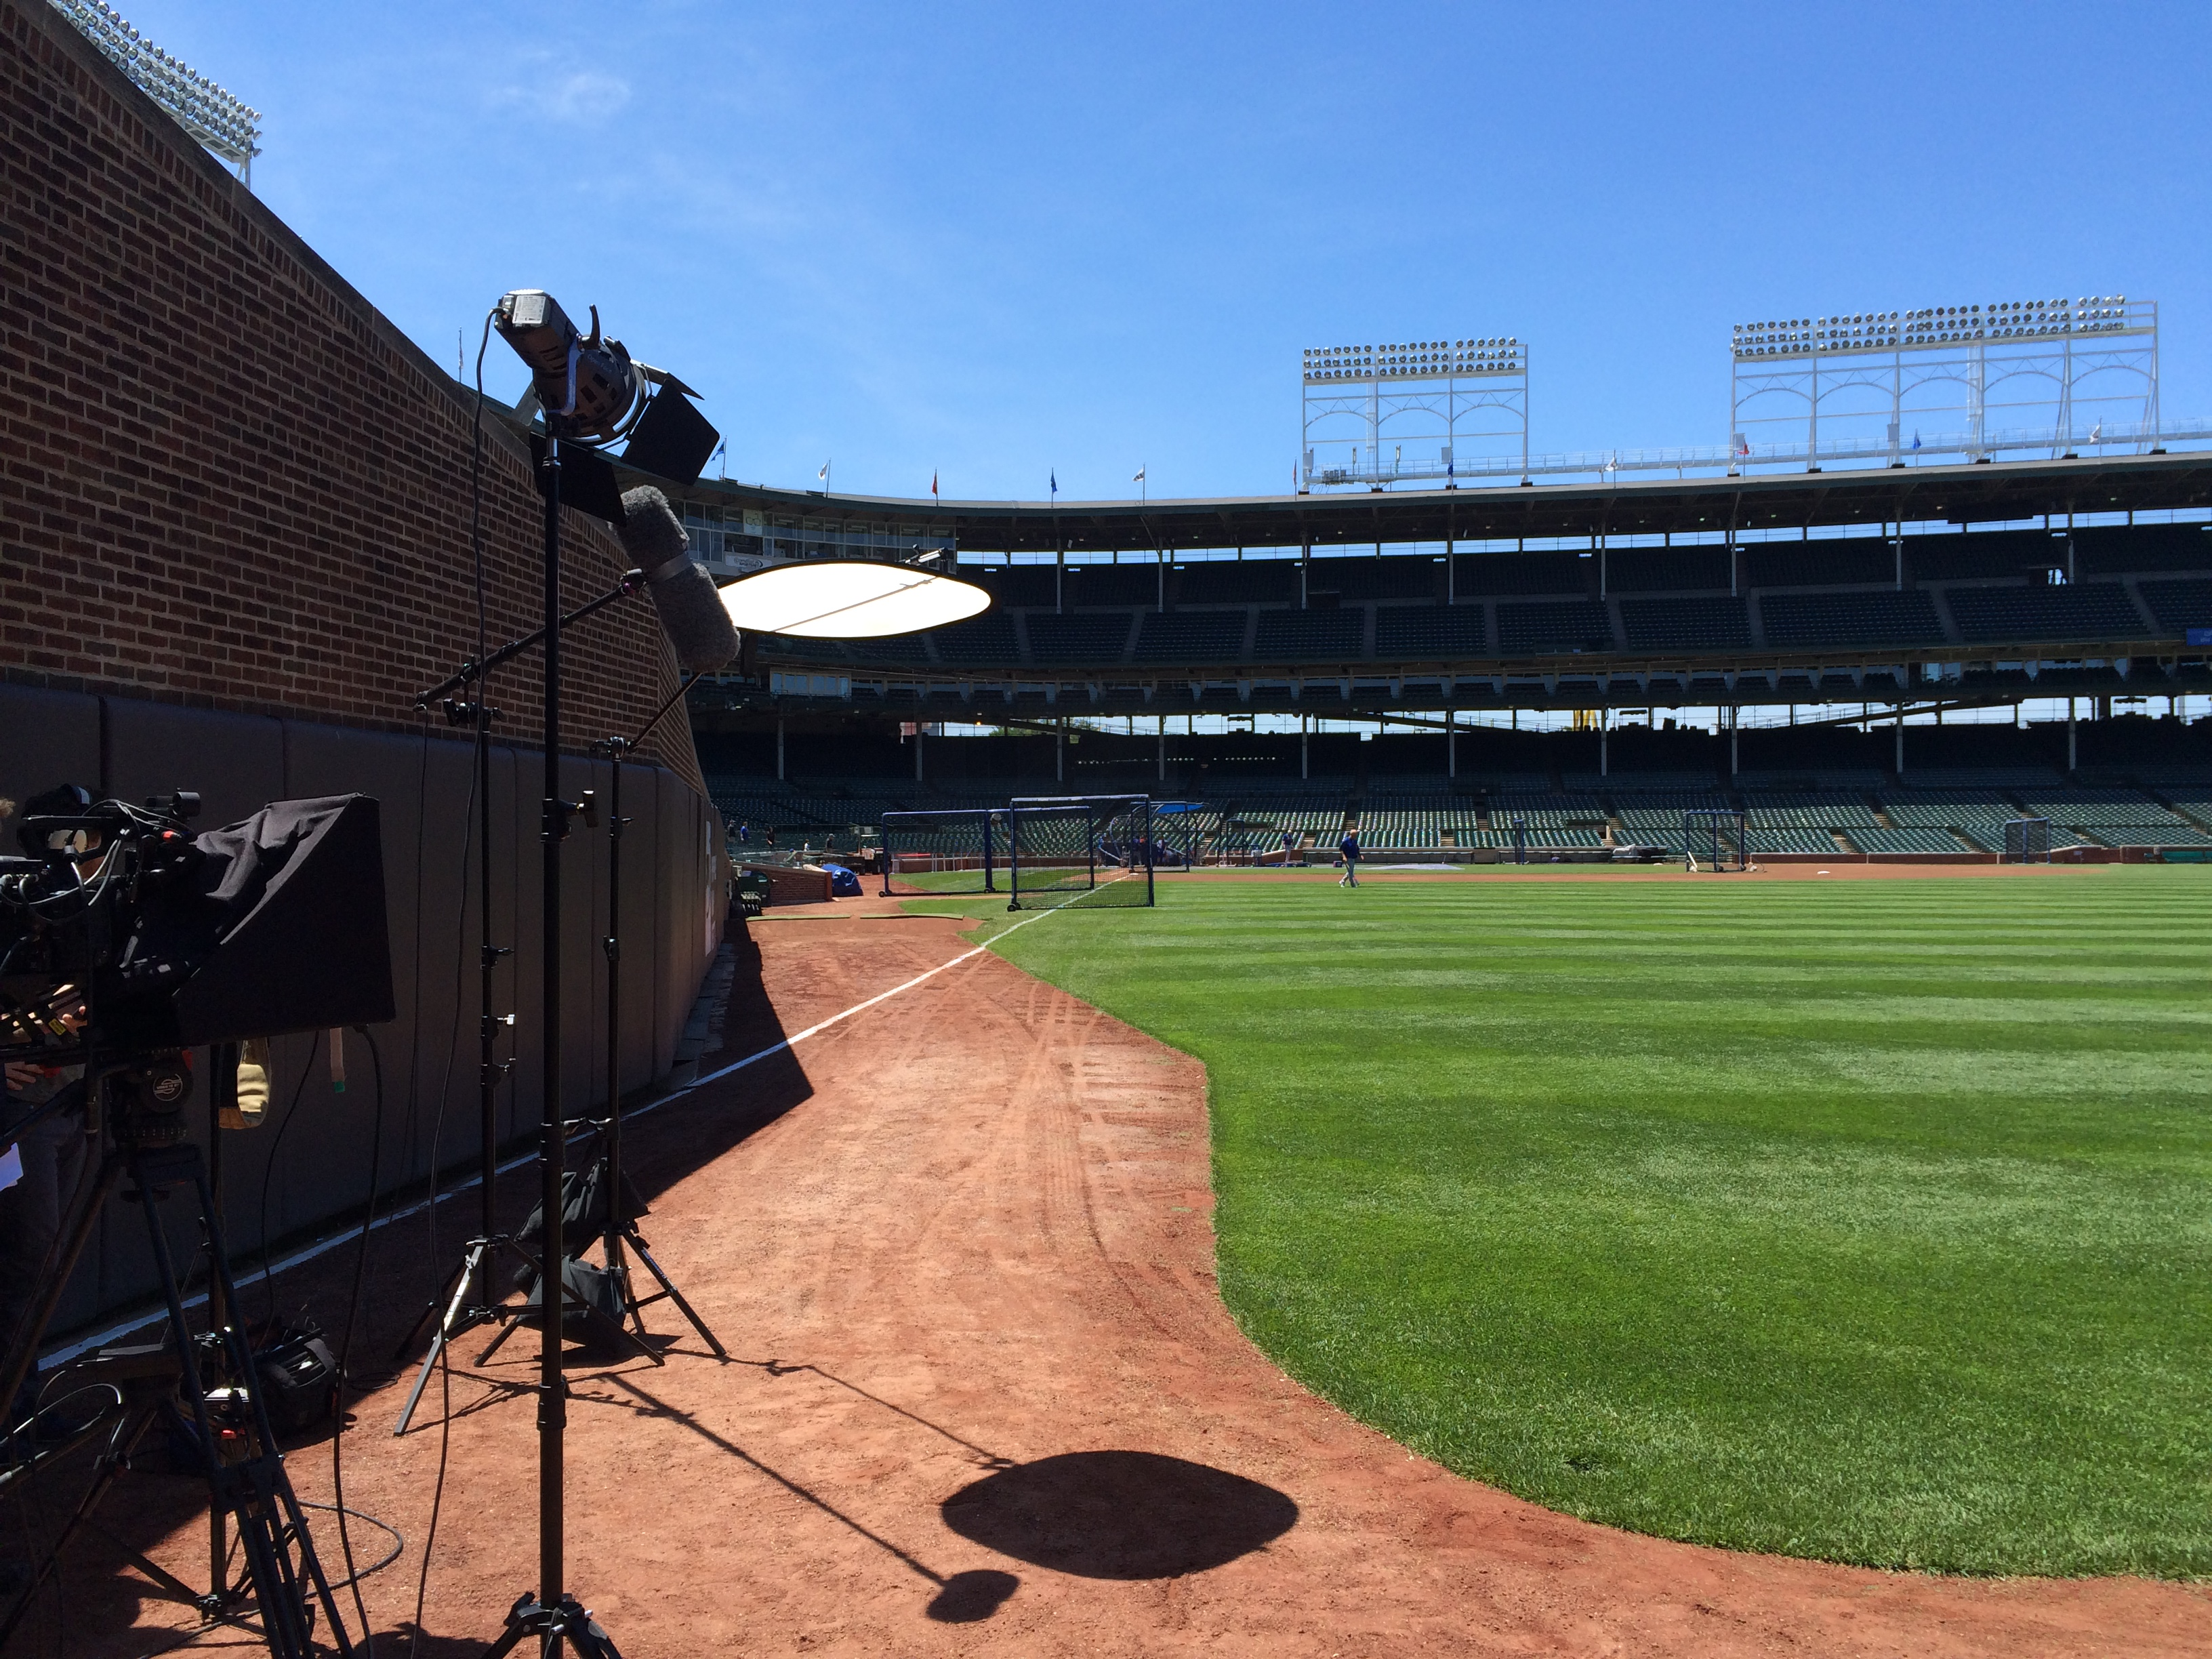 2014 06 05 13.14.11 Chicago Video Crew visits Wrigley Field